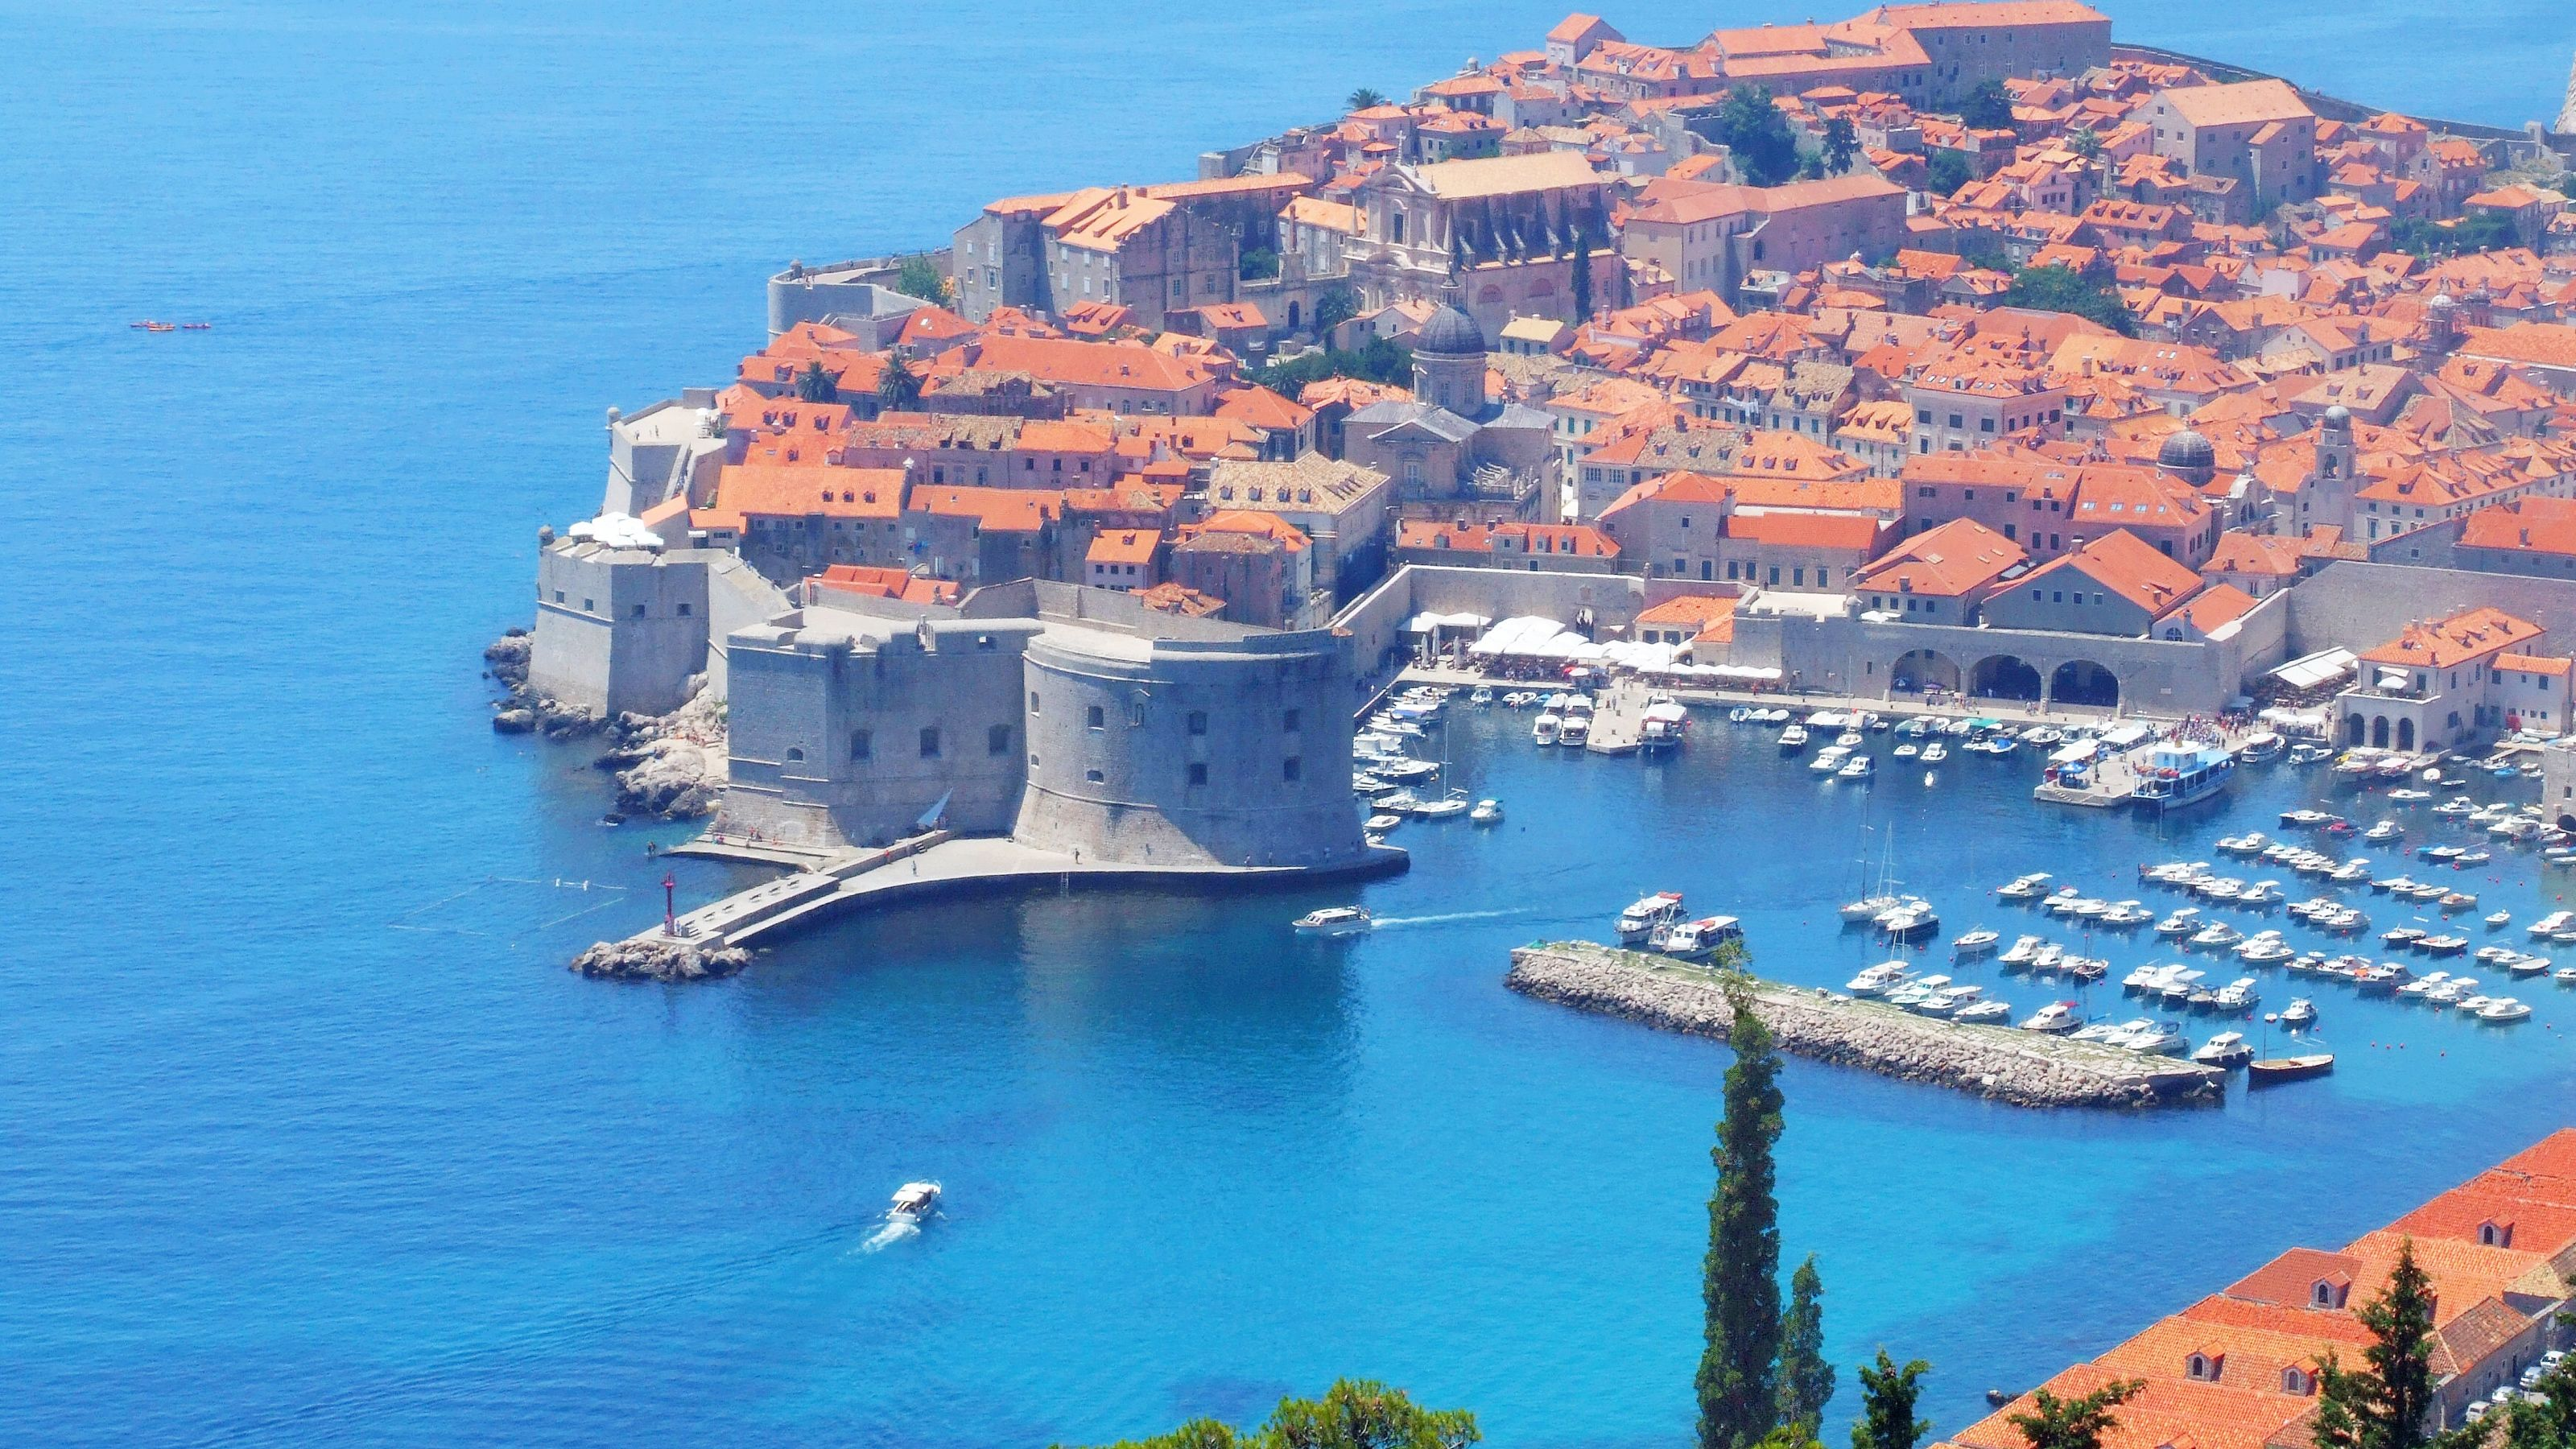 Clear day at the Pearl of the Adriatic in Dubrovnik